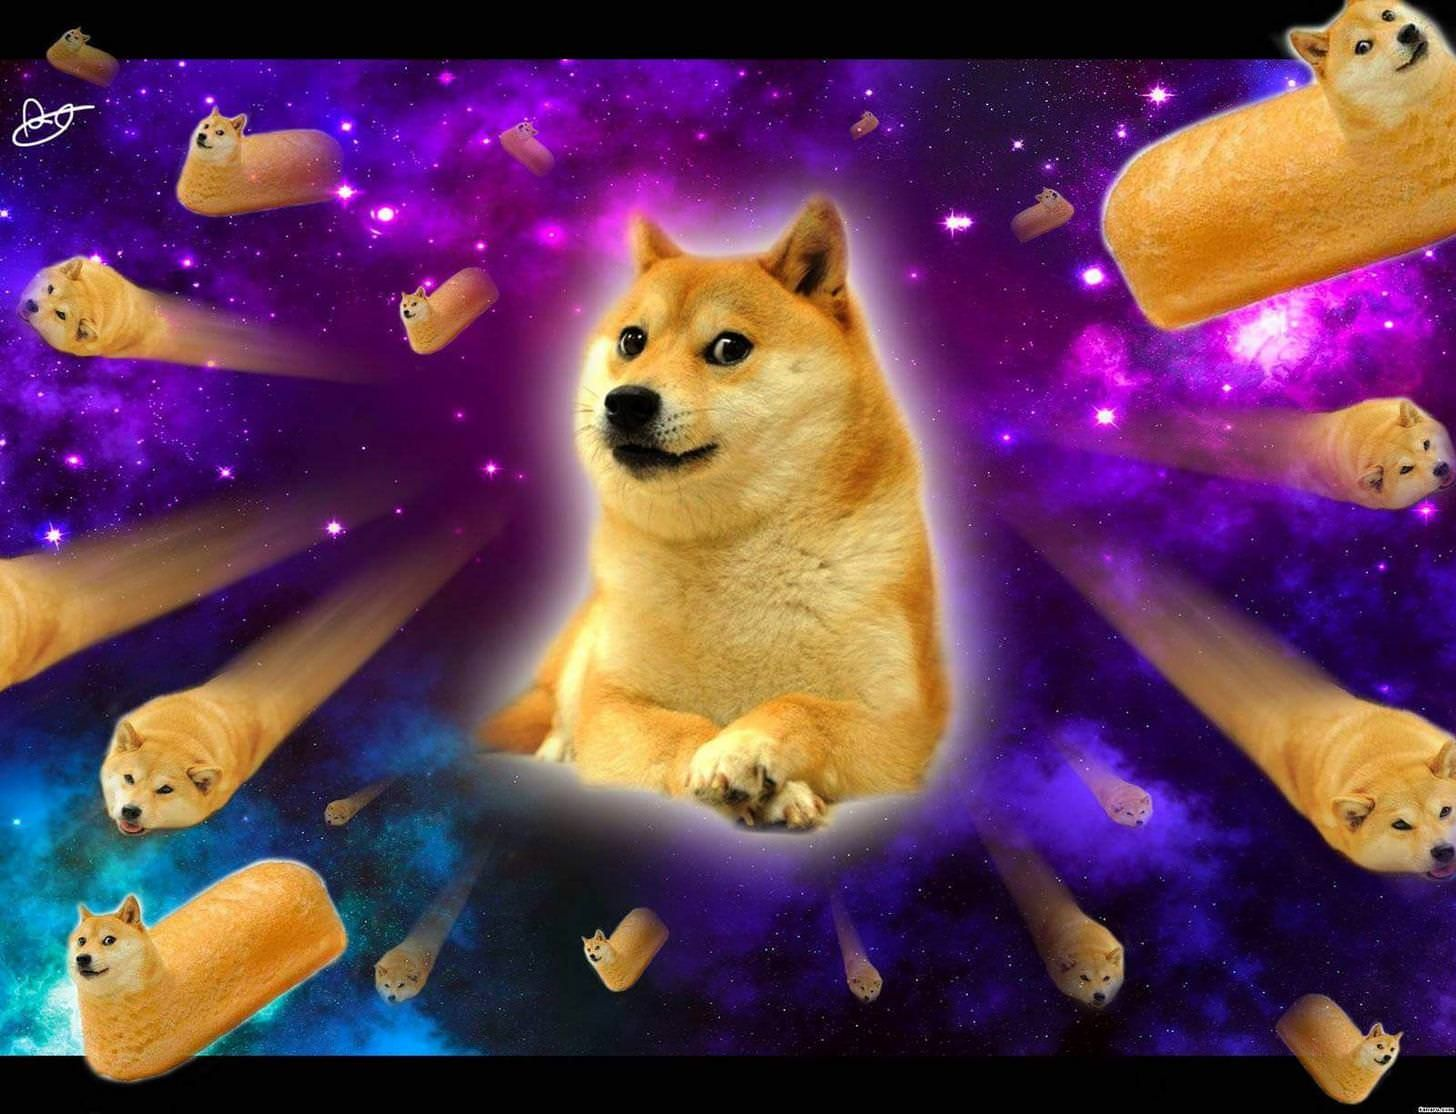 Best Wallpaper Ever For Pc Funny Post Doge Photo Dog Poster Doge